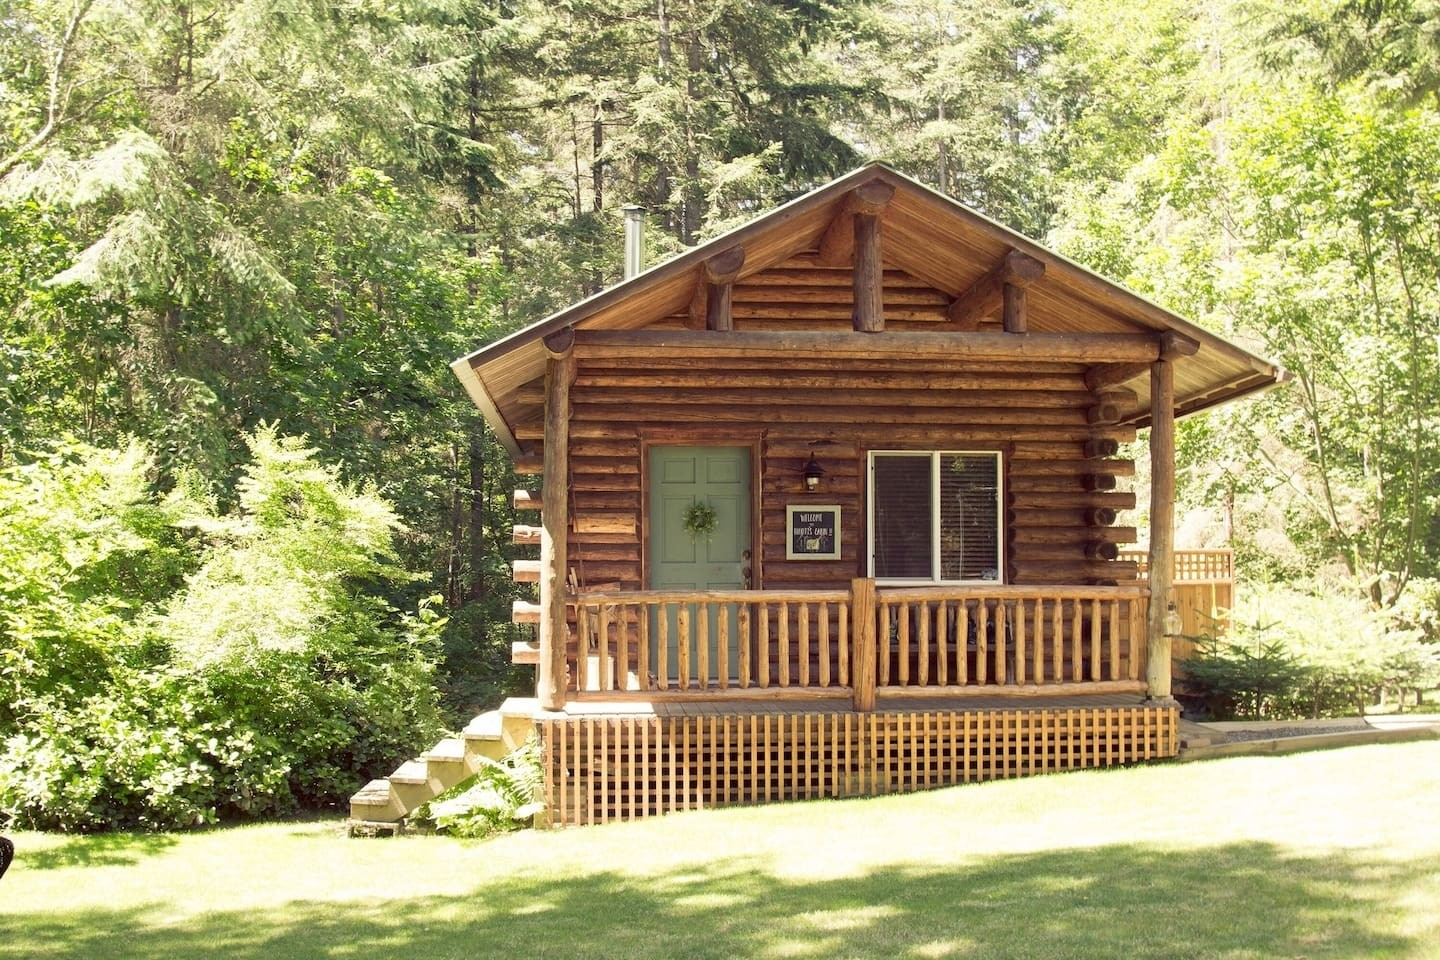 Elliotts Cabin Charming and Cozy